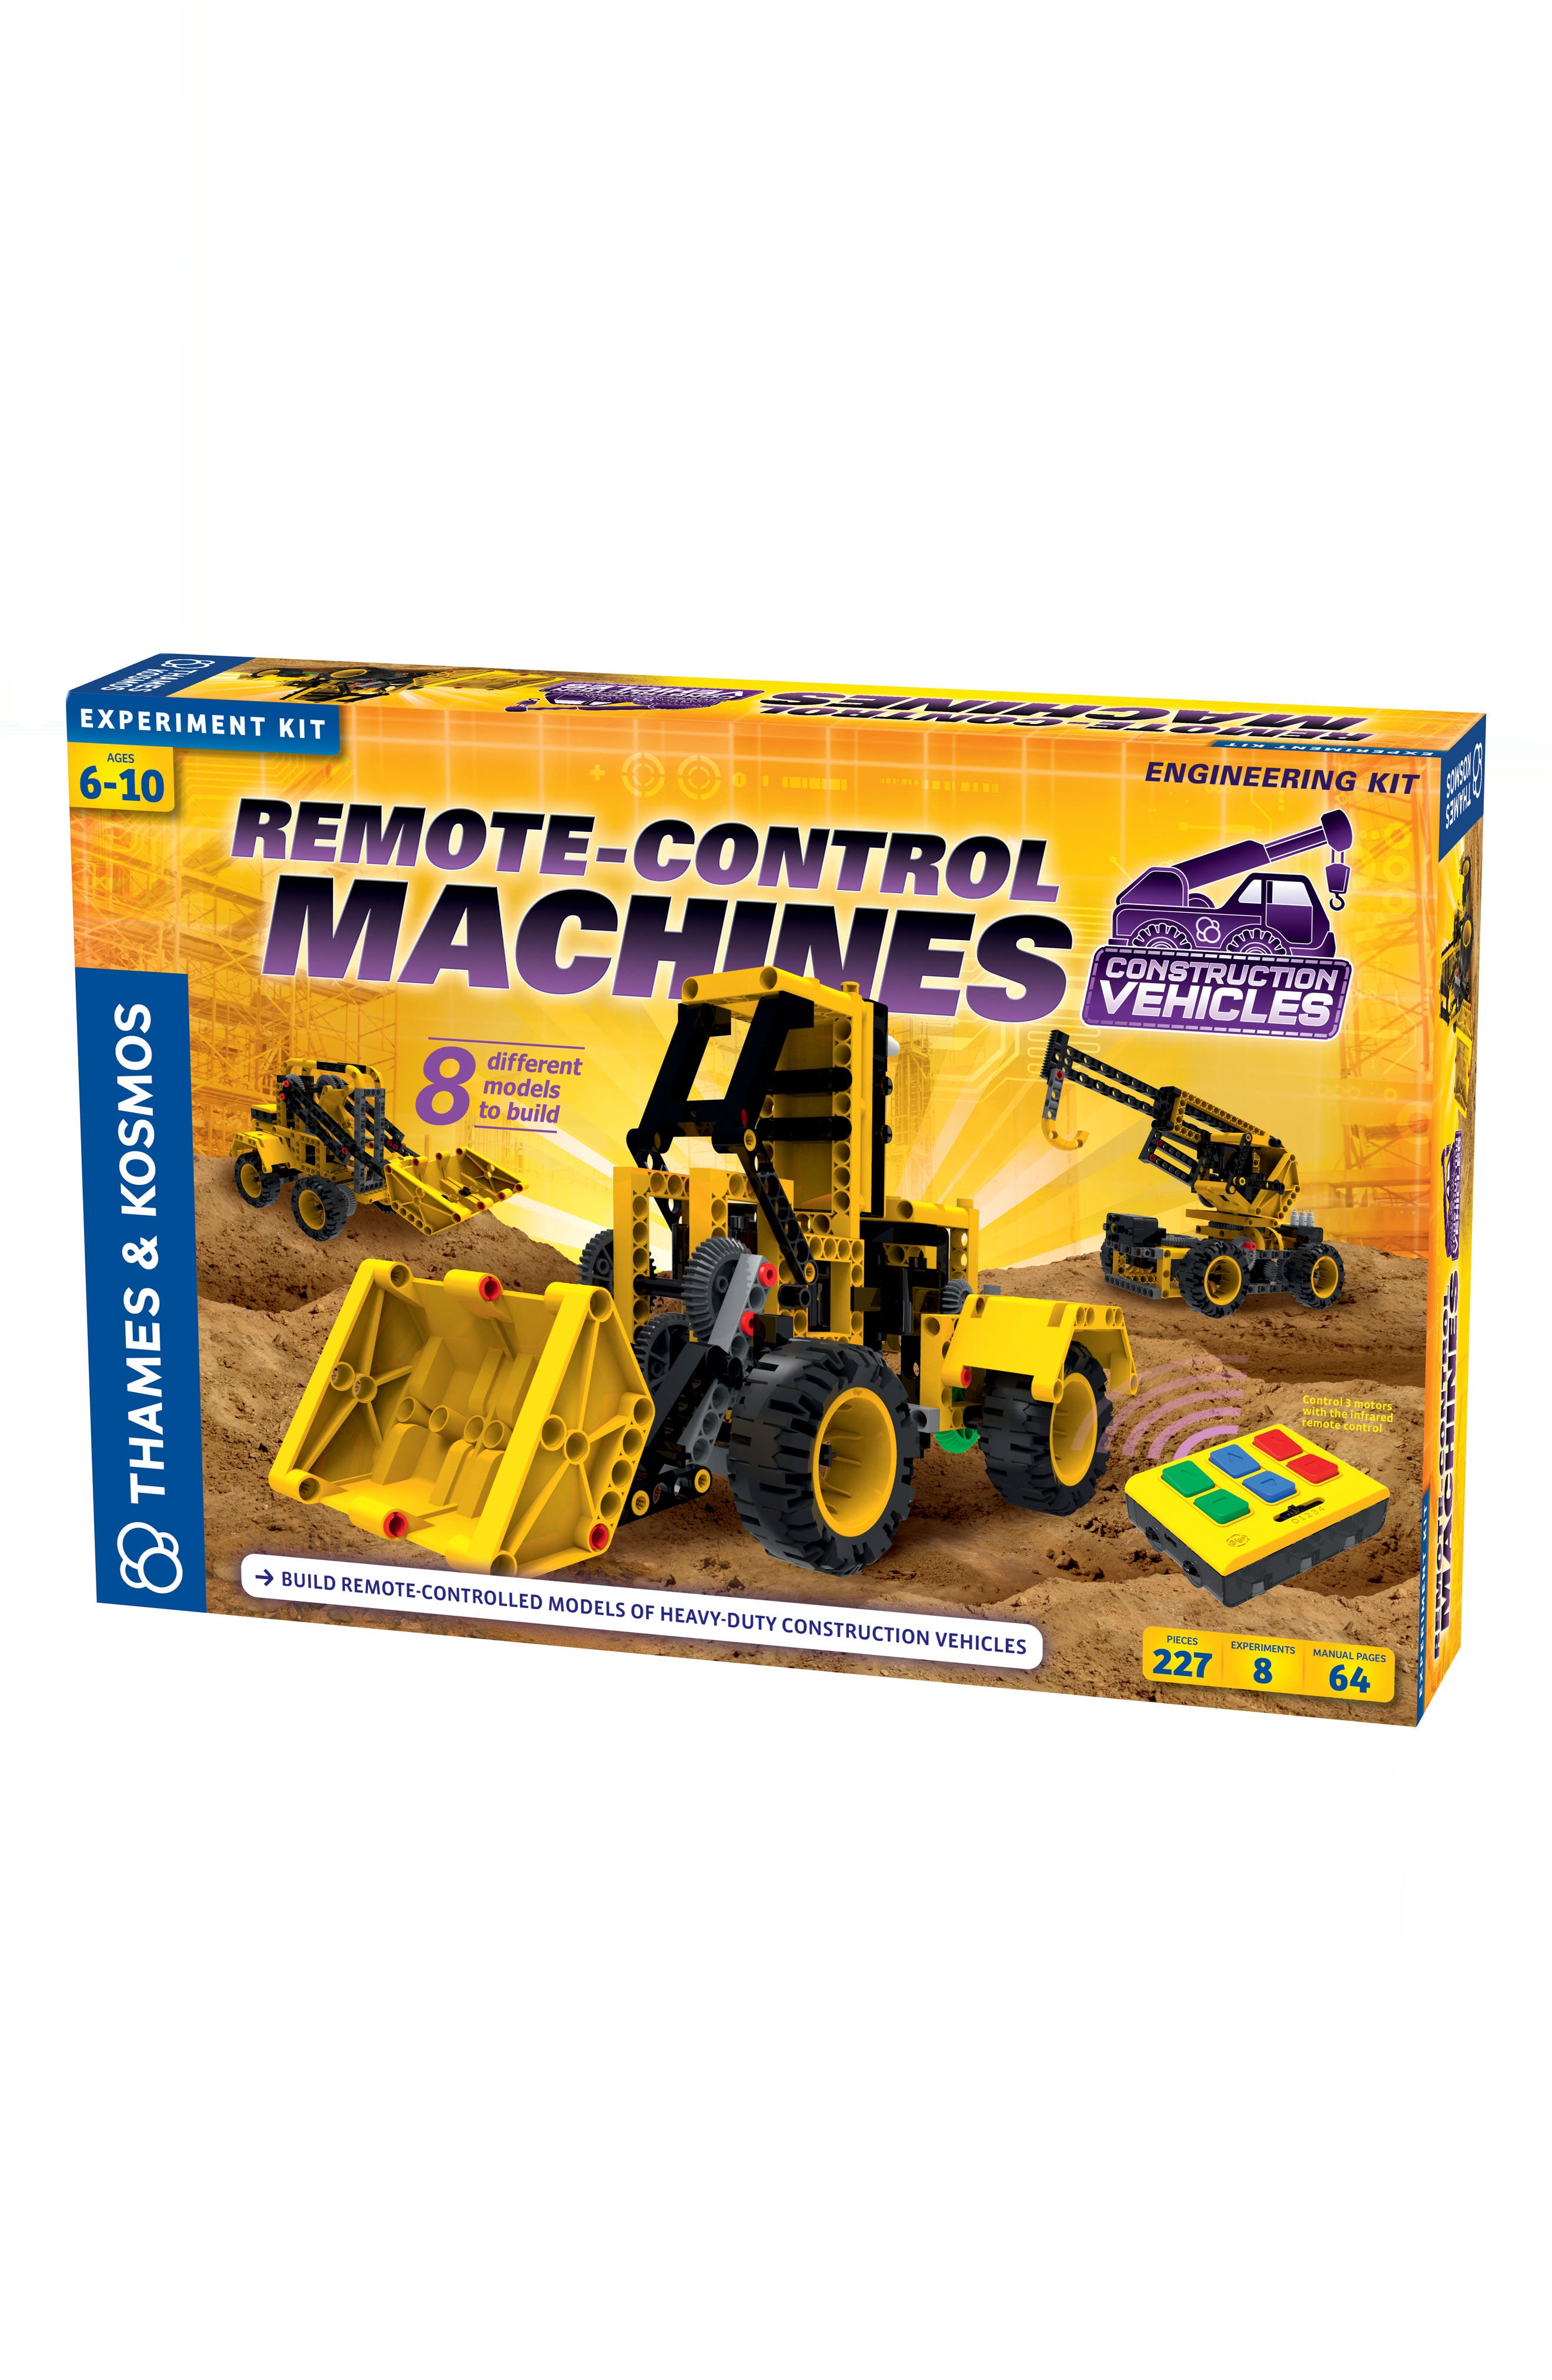 Remote Control Machines Construction Vehicles Kit,                             Main thumbnail 1, color,                             Multi